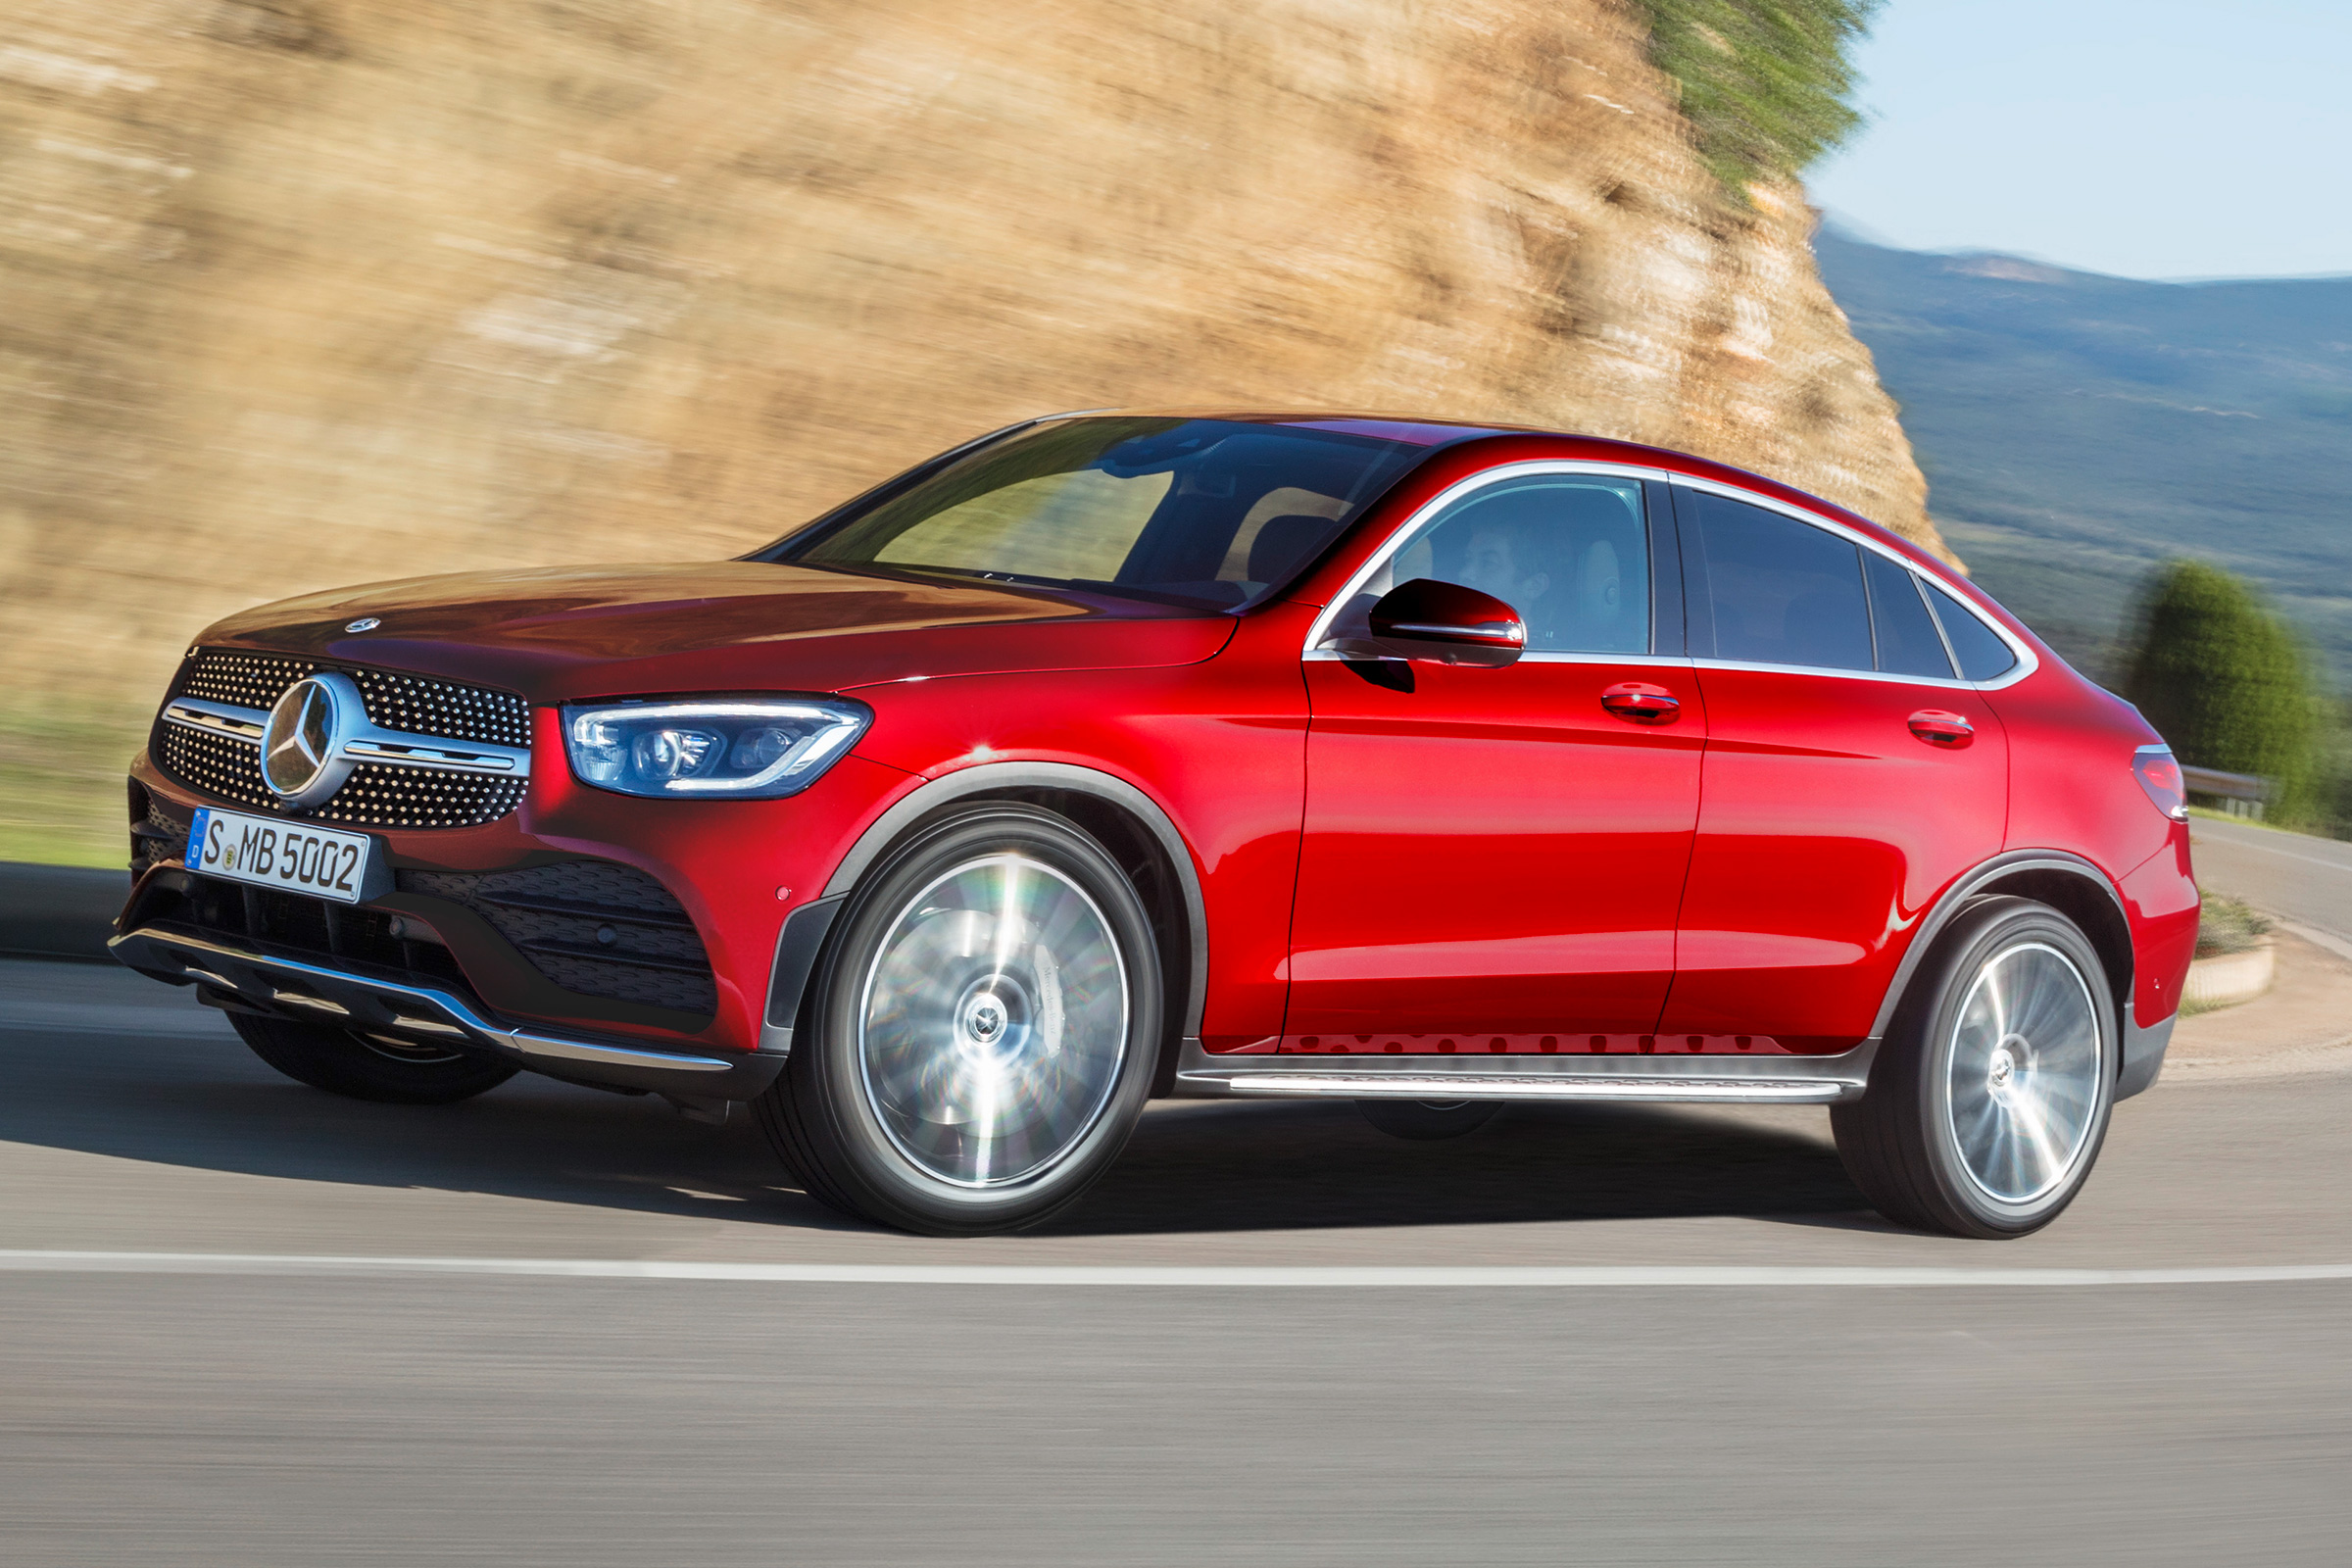 Facelifted 2019 Mercedes GLC Coupe prices confirmed   Auto ...